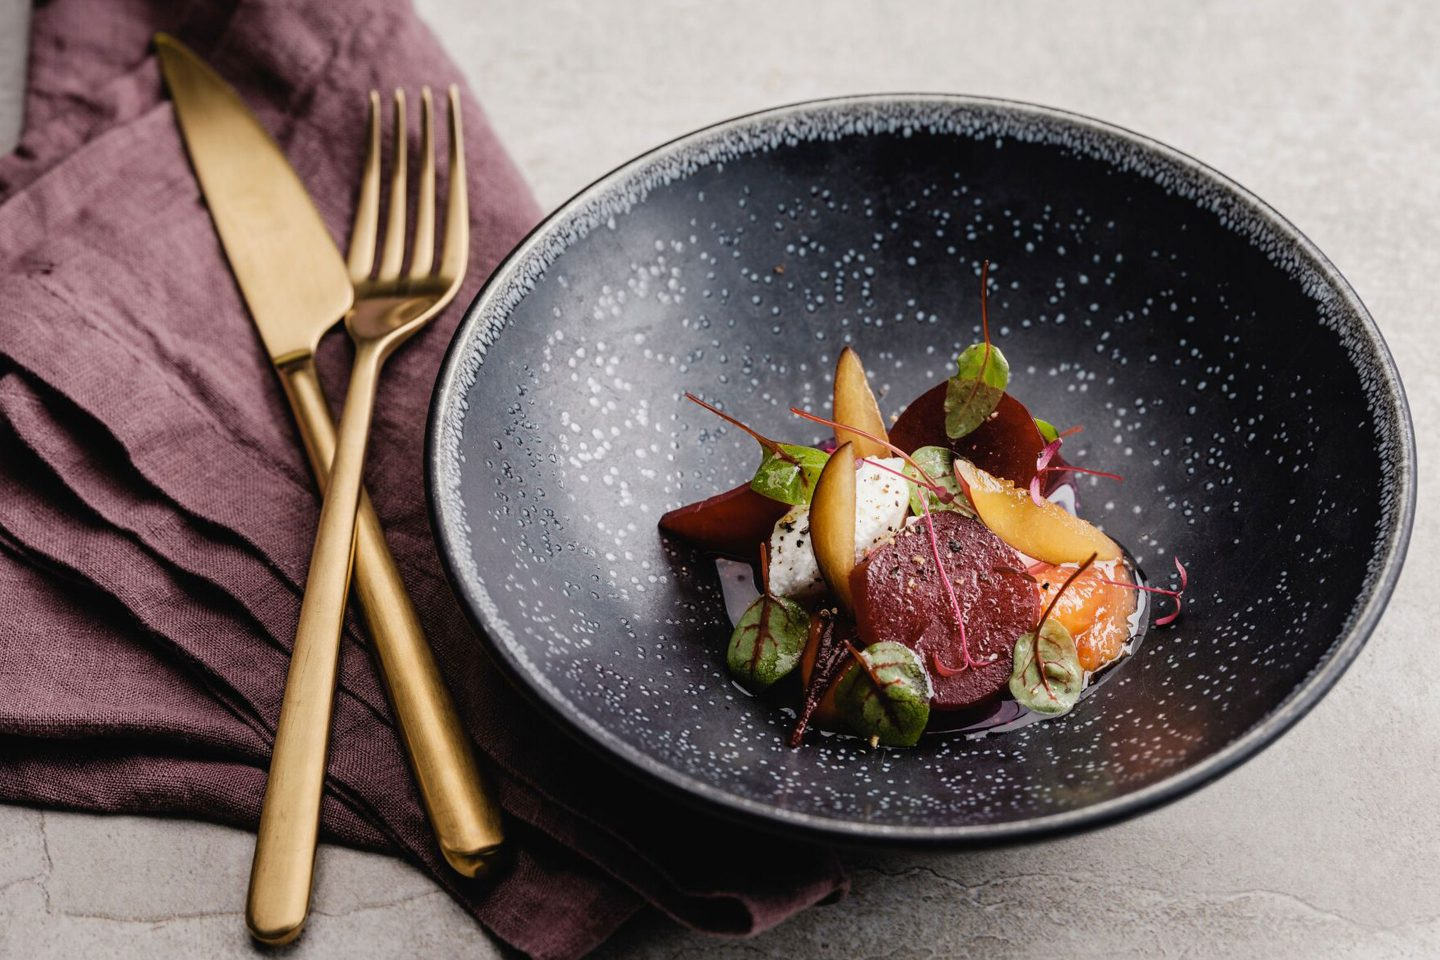 Beetroot With Caramelized Plums And Goatcheese